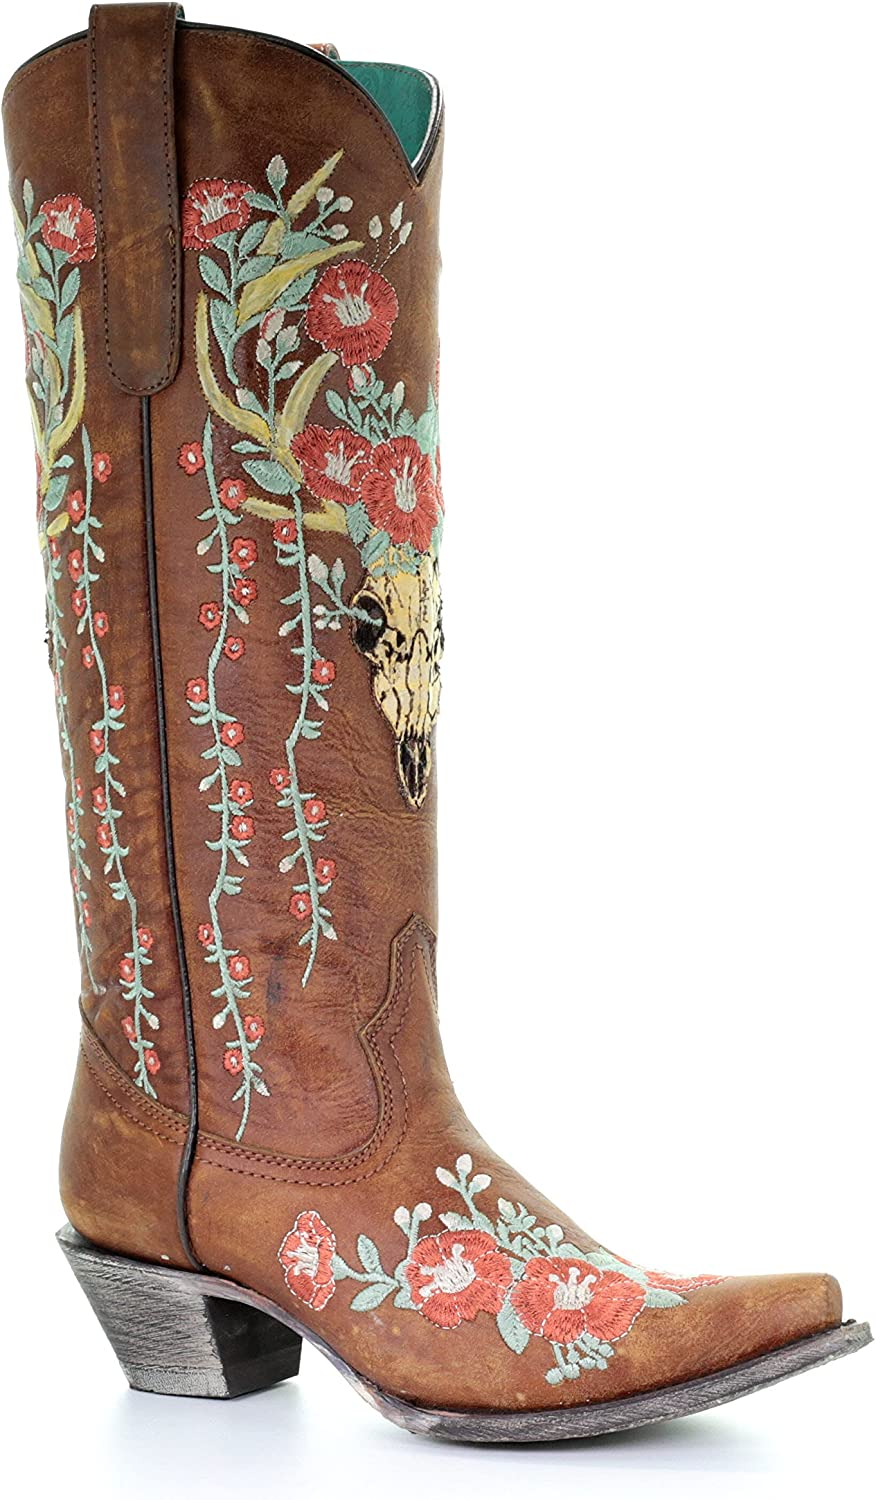 Corral Women's Juliet Deer Skull Overlay Floral Embroidery Cowgirl Boots - Tan